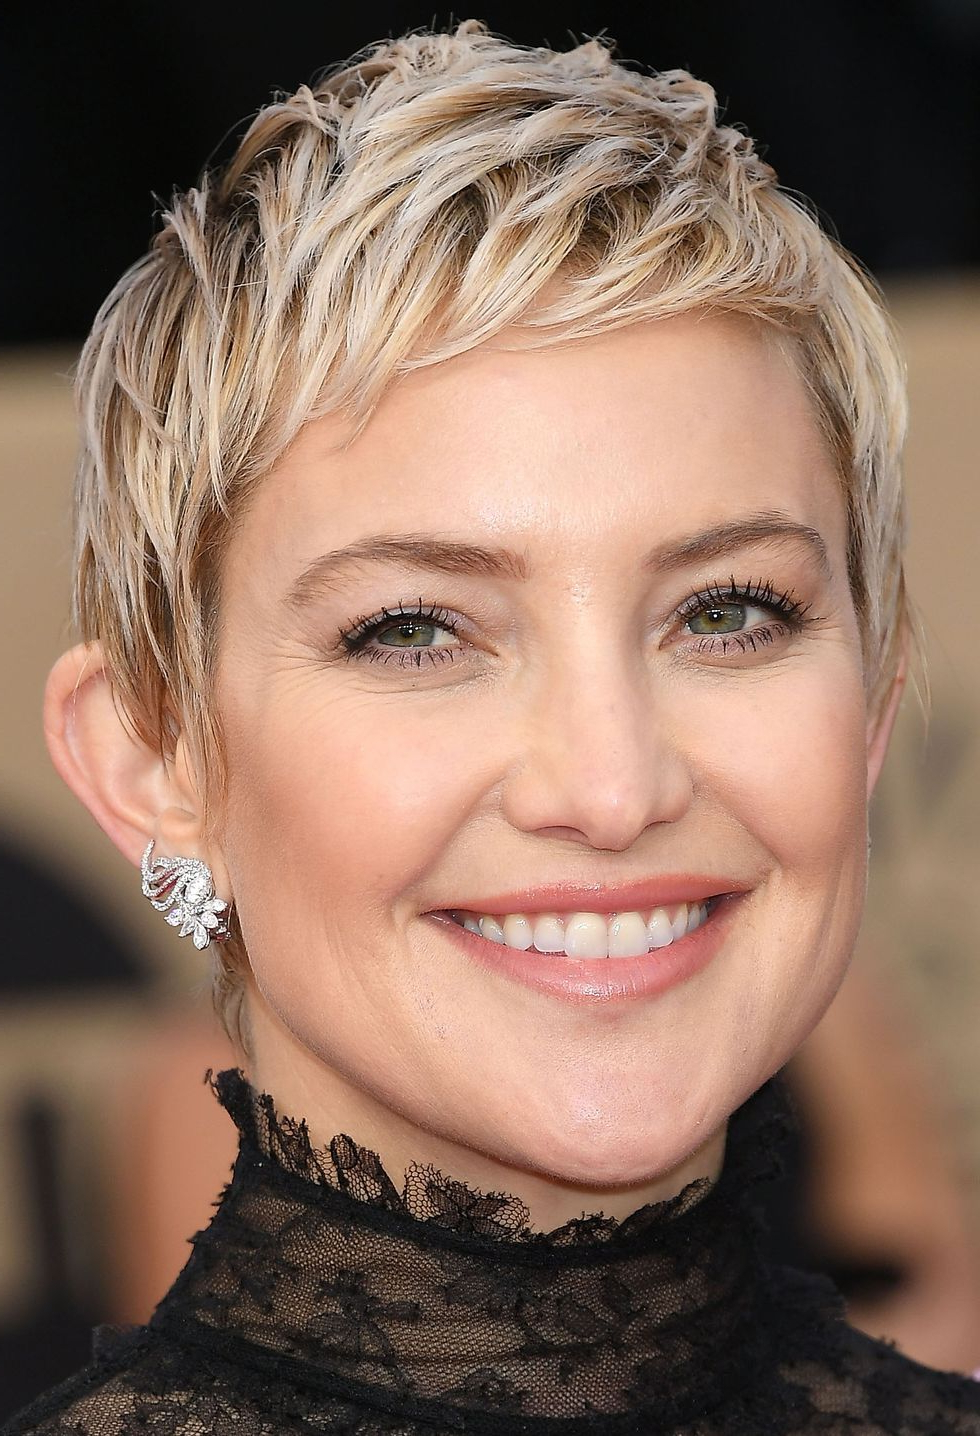 Best Celebrity Short Haircuts And Easy Hairstyles | Places To Visit Intended For Cute Celebrity Short Haircuts (View 17 of 25)